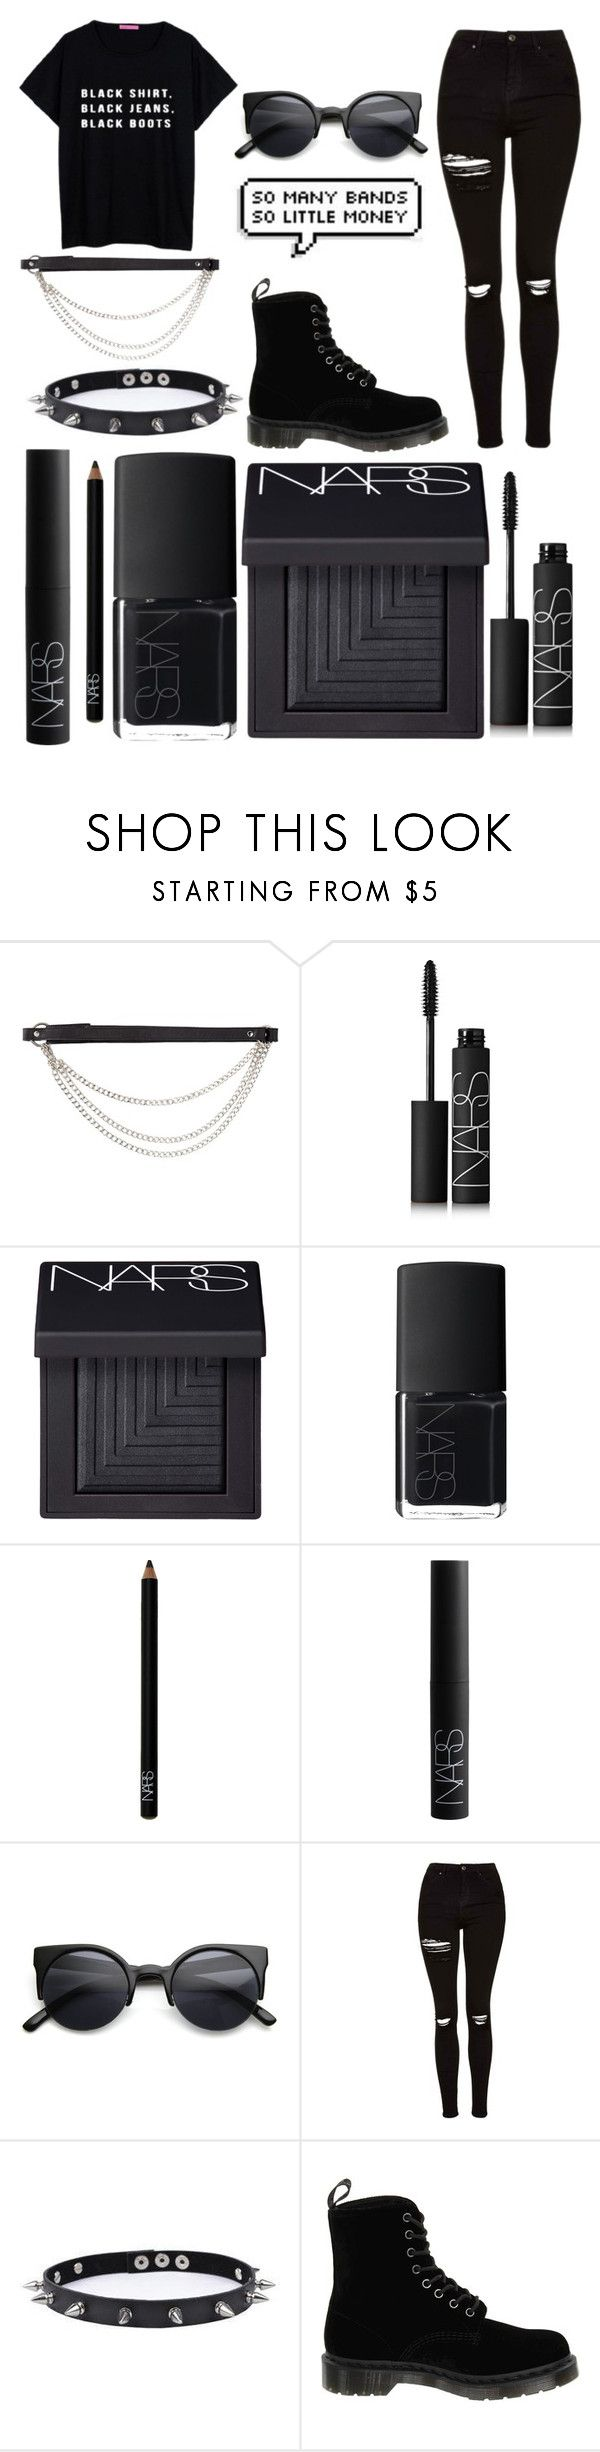 """""""*55"""" by sofspassosd ❤ liked on Polyvore featuring J.J. Winters, NARS Cosmetics, Retrò, Topshop, Trend Cool and Dr. Martens"""